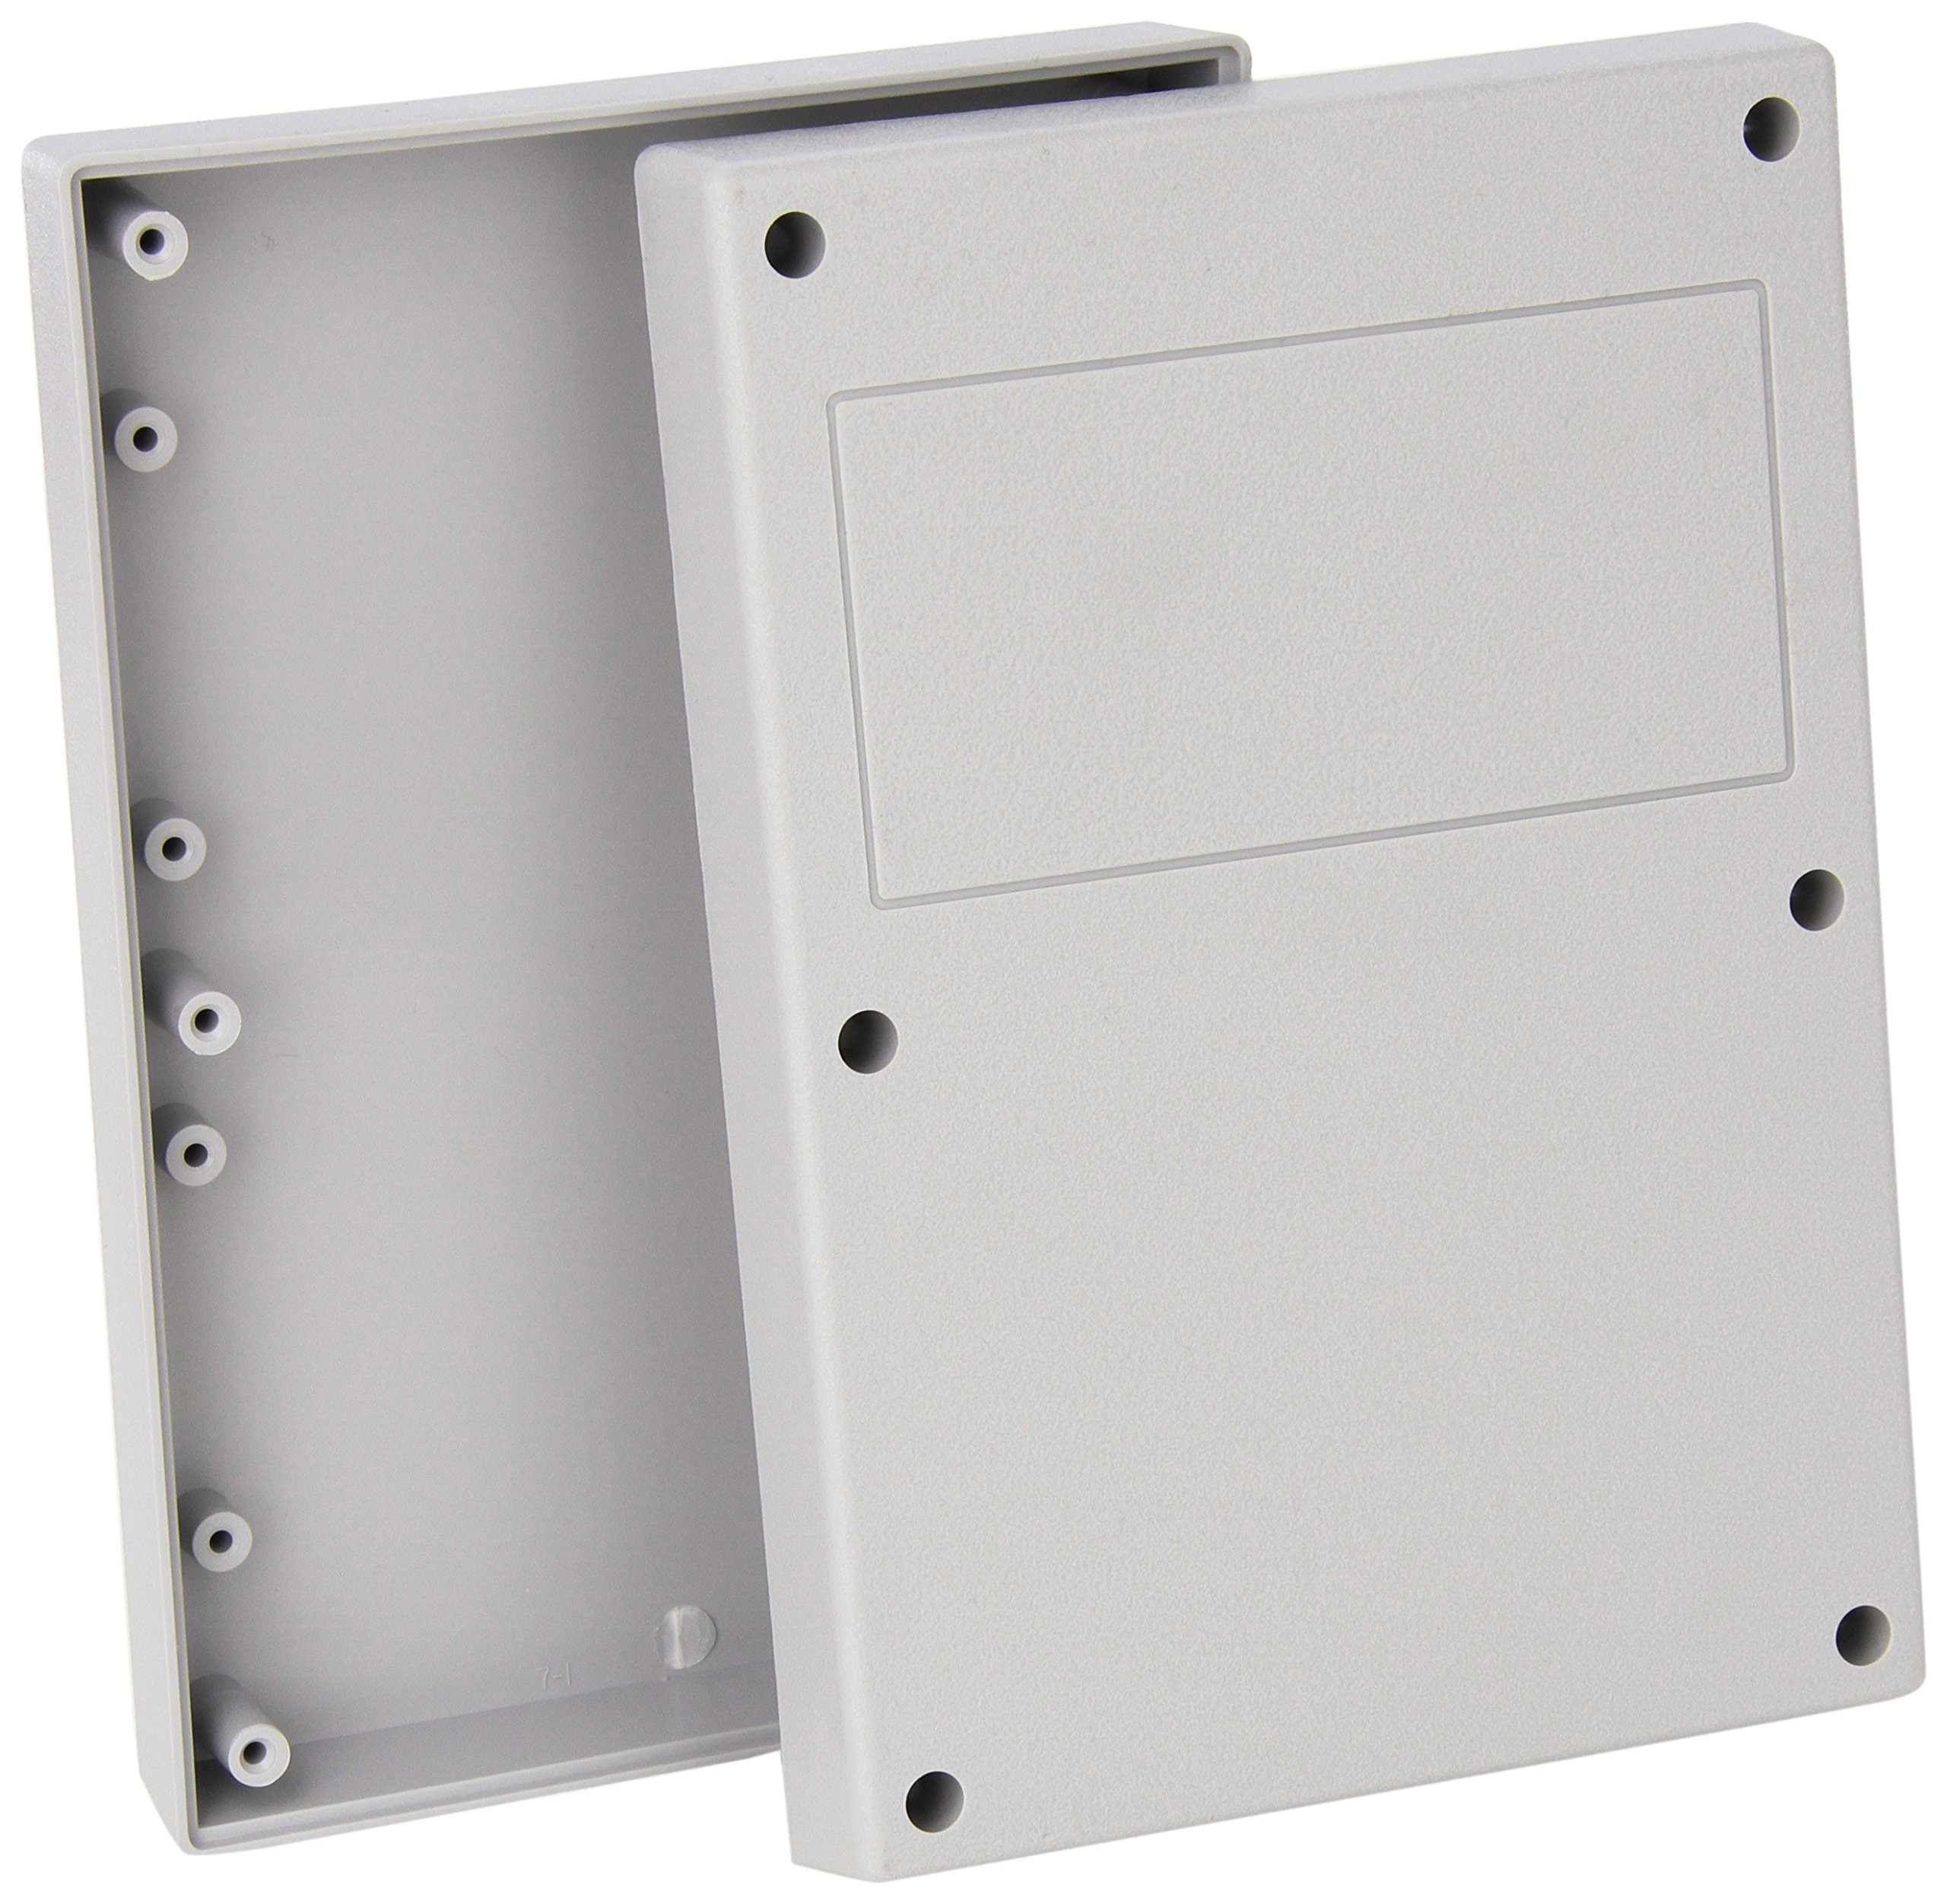 Serpac 171 ABS Plastic Enclosure, 6-7/8'' Length x 4-7/8'' Width x 1-1/2'' Height, Gray